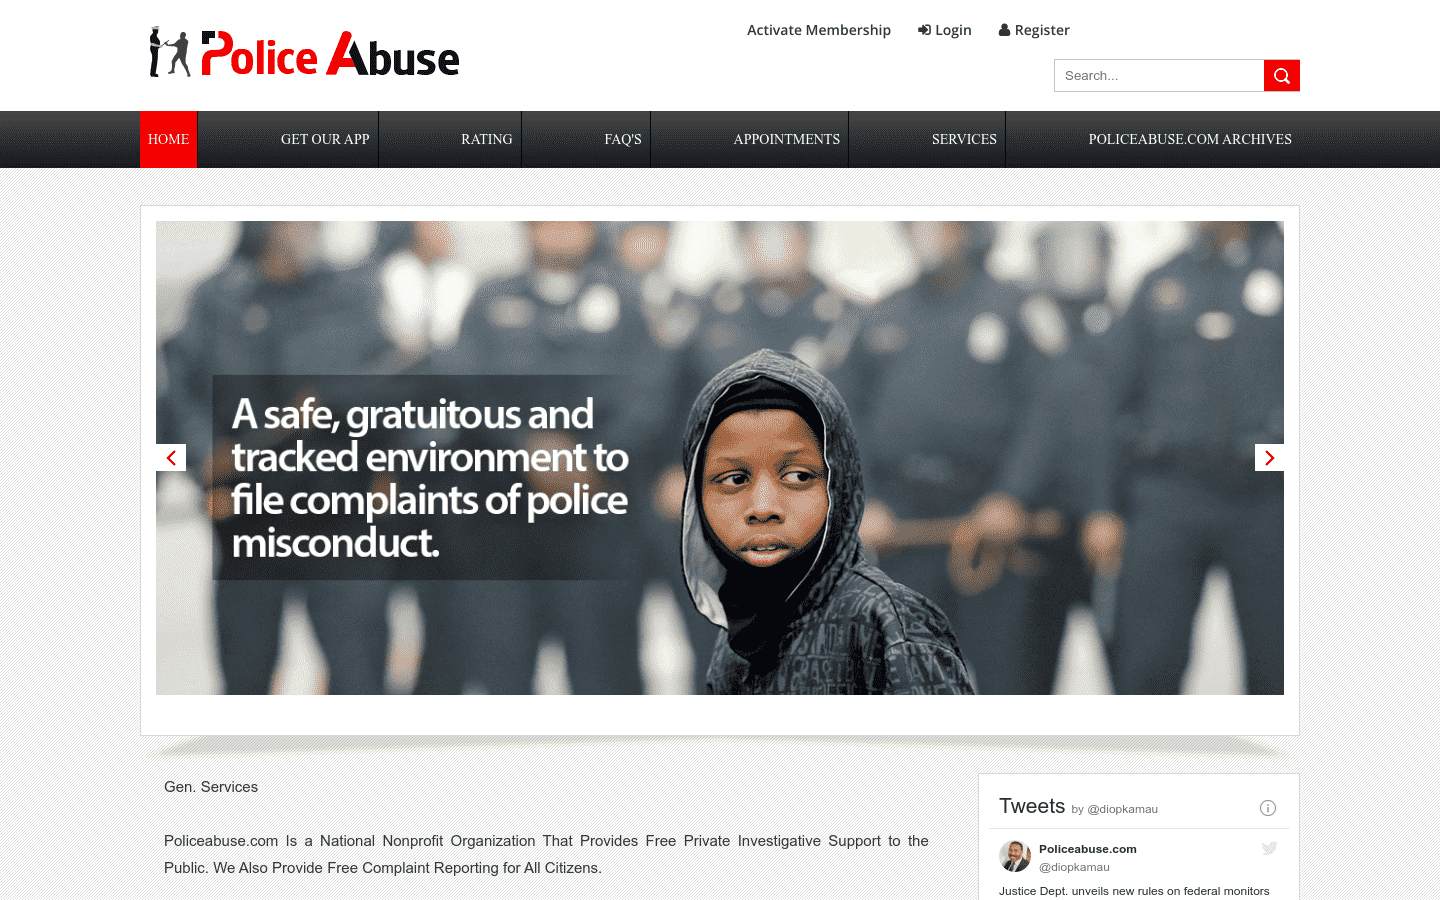 PoliceAbuse reviews and complaints